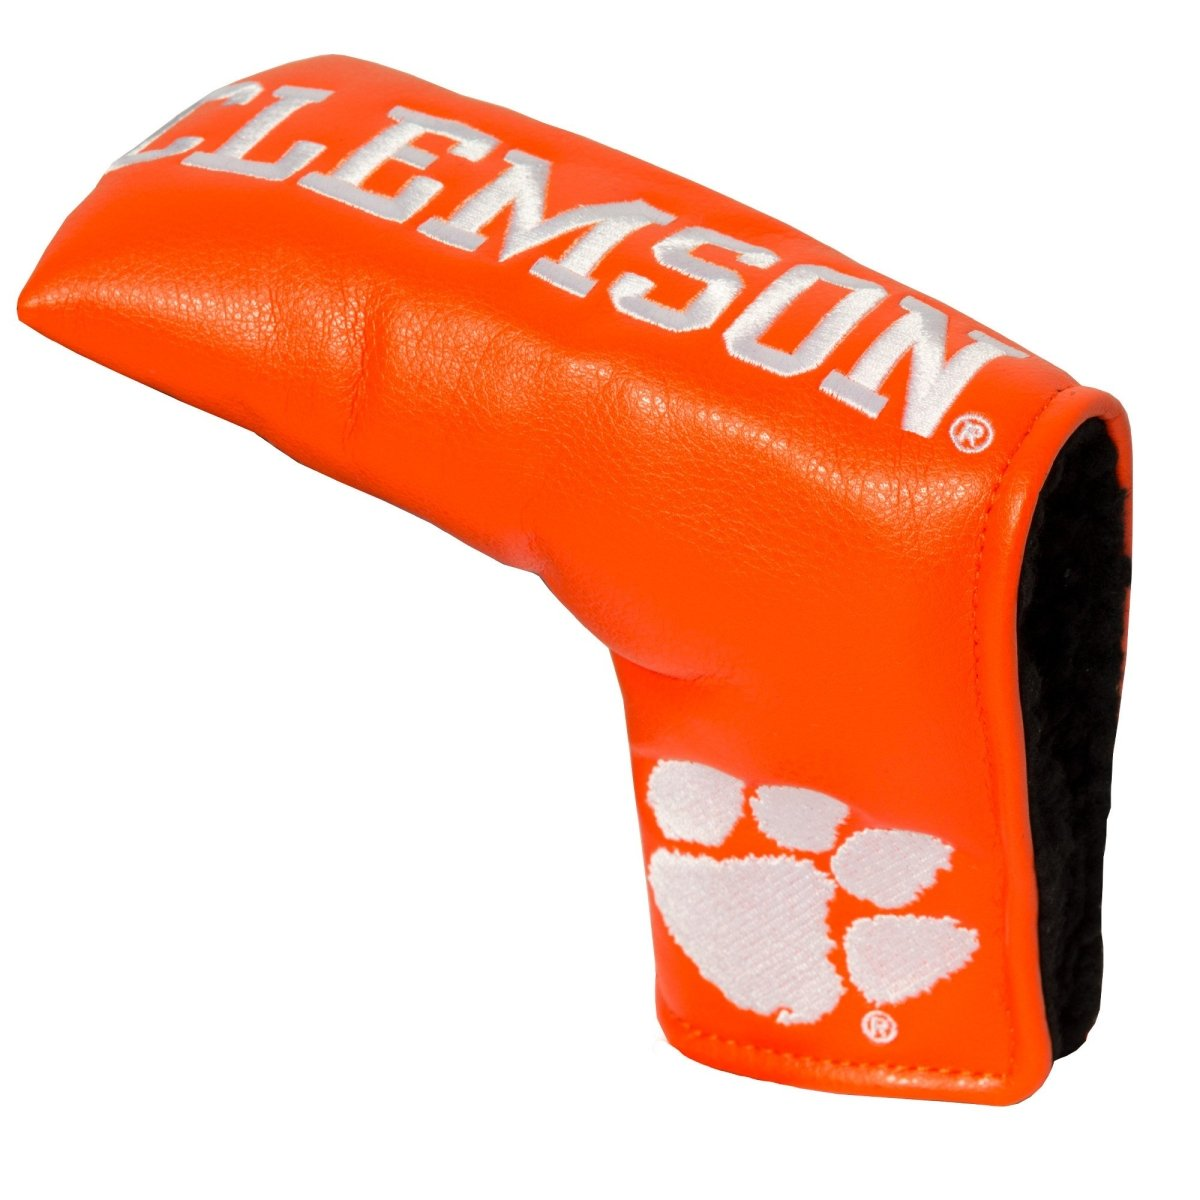 Team Golf Usa Clemson Tigers Vintage Golf Club Cover - Mr. Knickerbocker